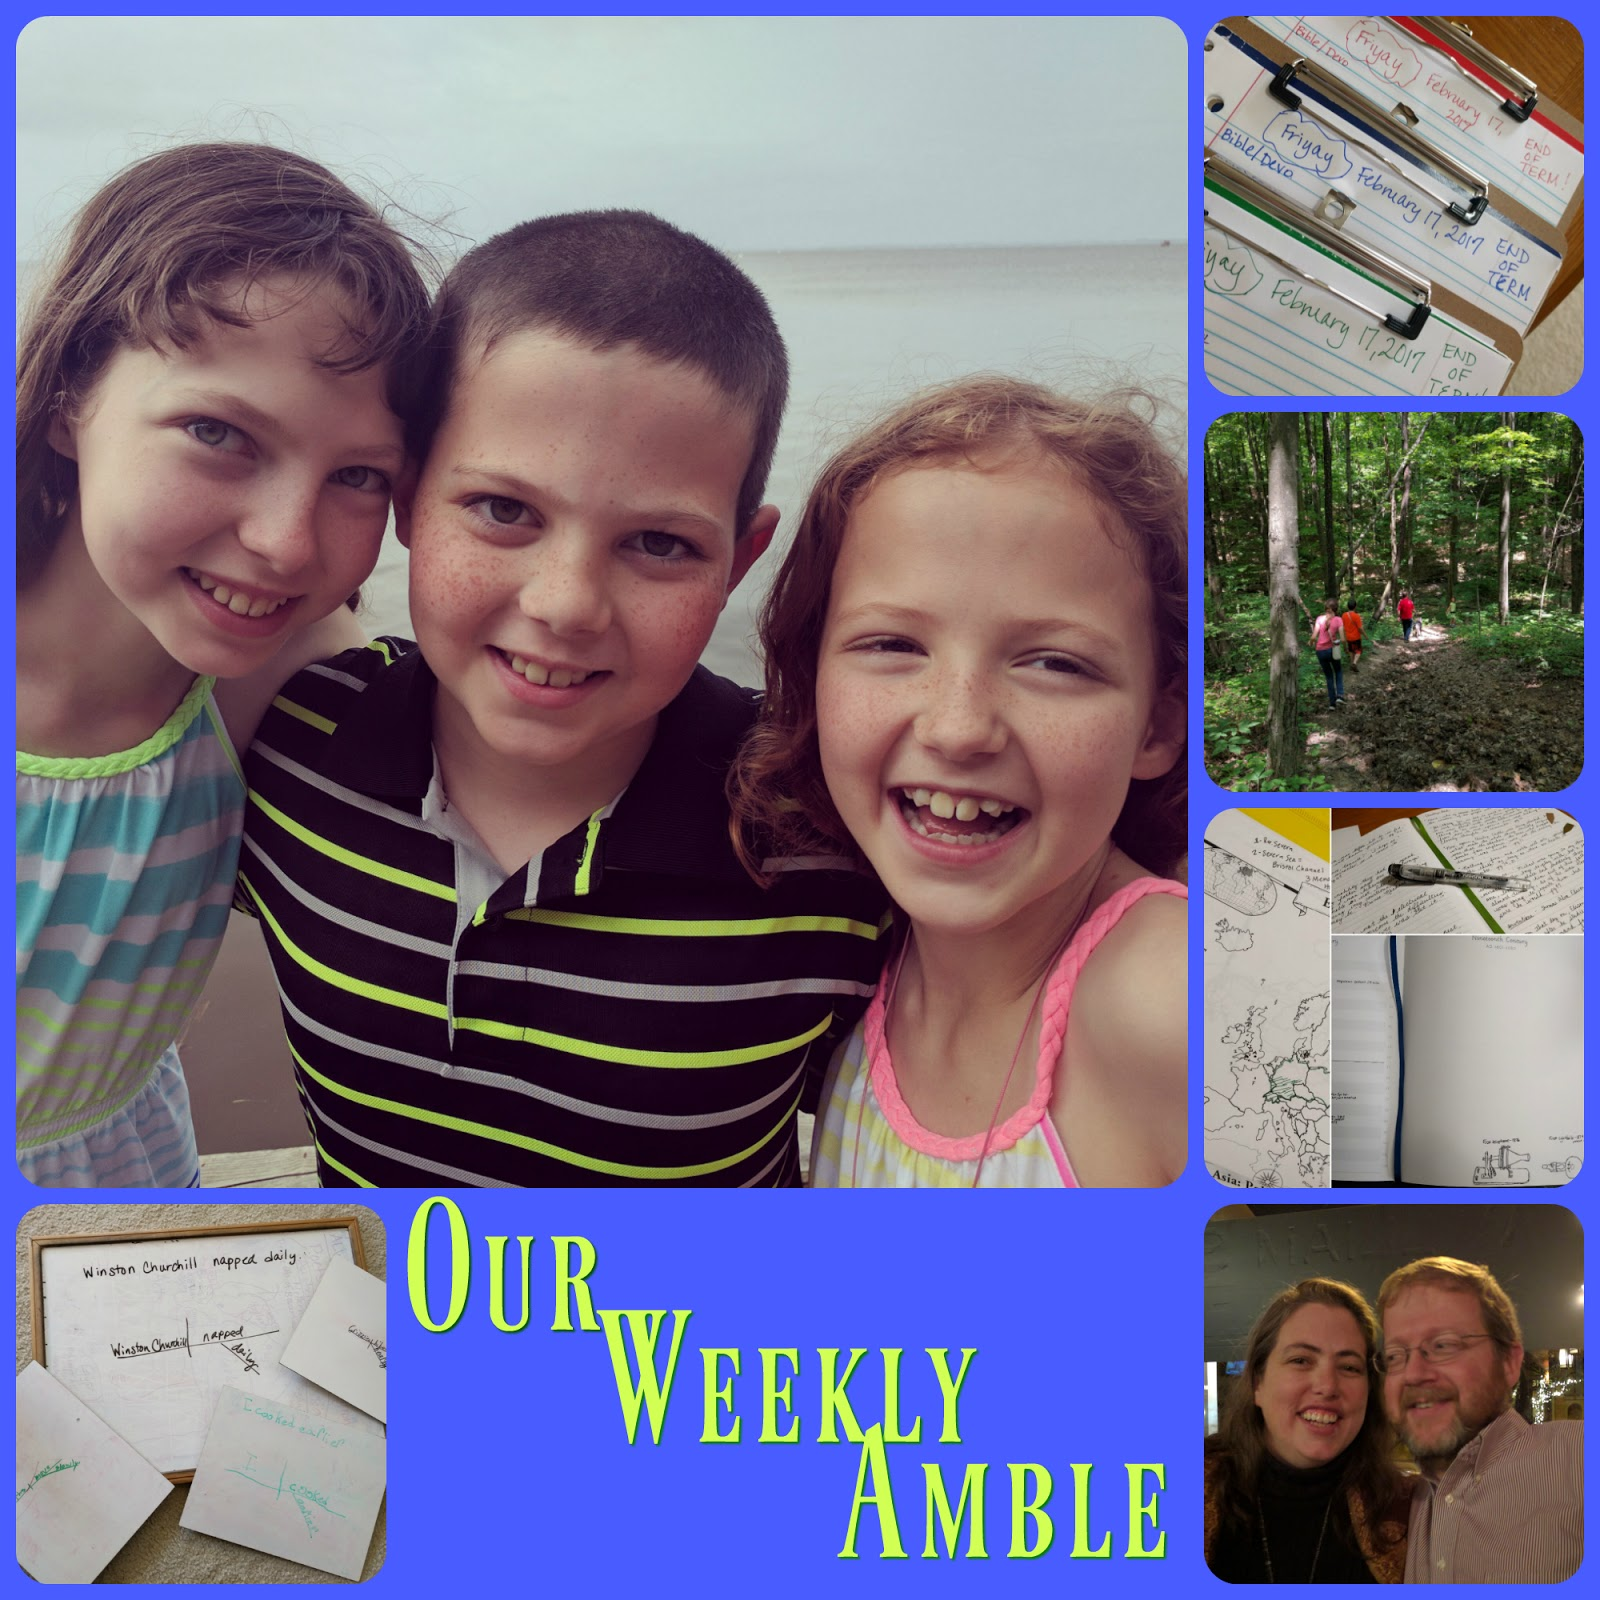 Our Weekly Amble for February 5-9, 2018